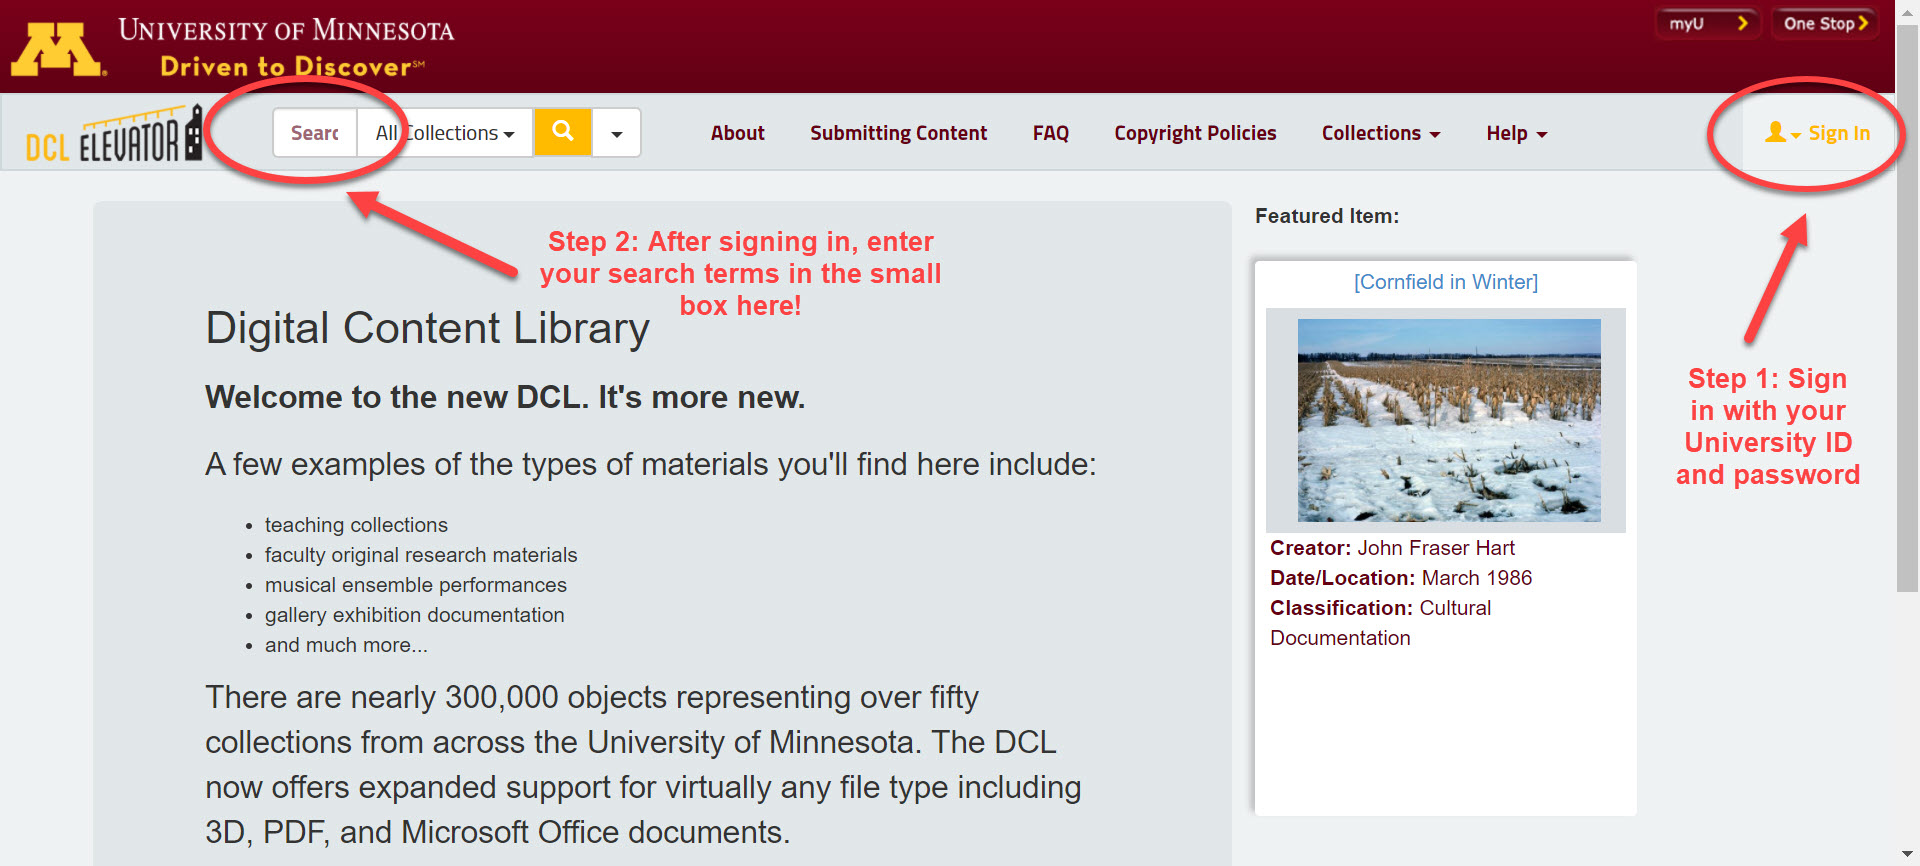 "An image of the Digital Content Library homepage, with the places to sign and search the resource highlighted. The spot to click to sign in is circled and includes a note that says ""Step 1: Sign in with your University ID and password."" The search box is circled with a note that says, ""Step 2: After signing in, enter your search terms in the small box here!"""